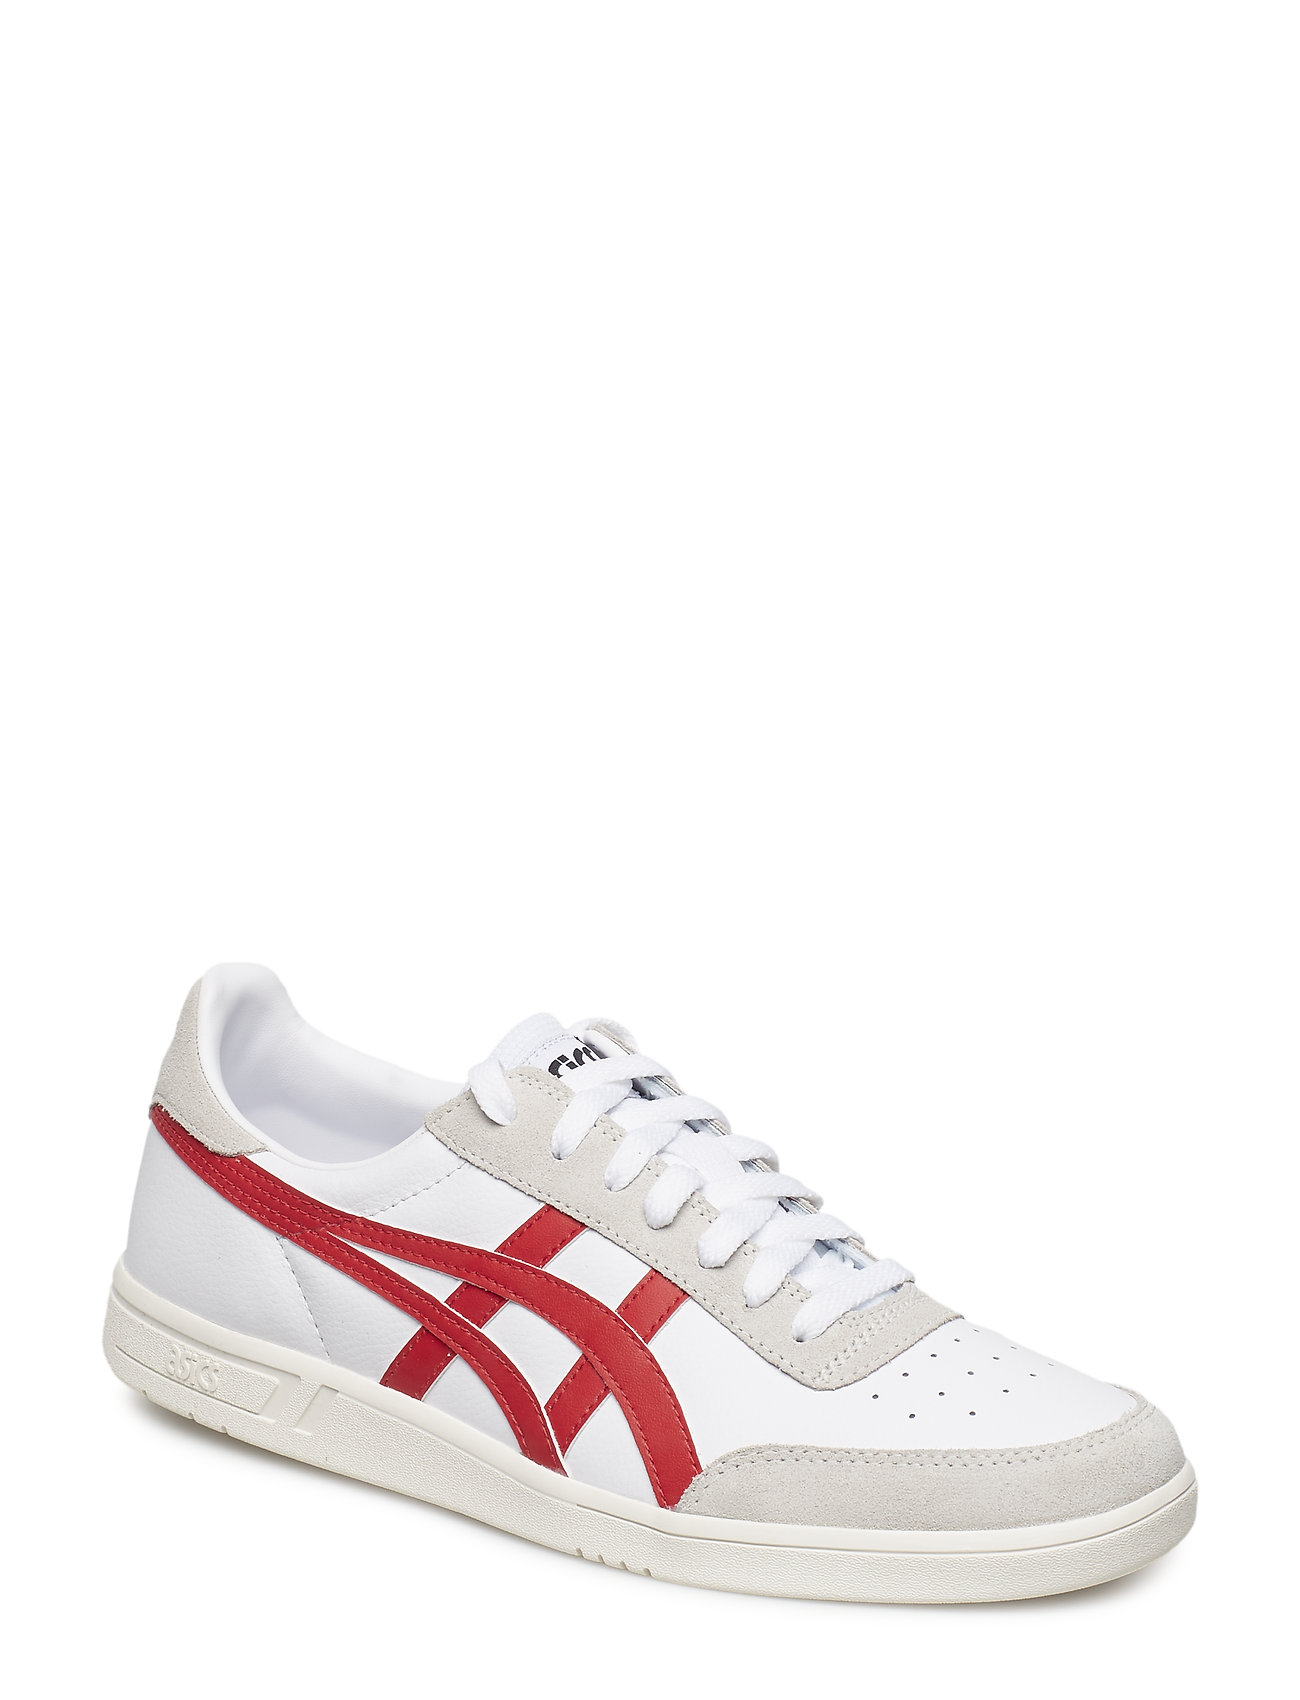 Image of Gel-Vickka Trs Shoes Sport Shoes Low-top Sneakers Hvid Asics Tiger (3073923861)